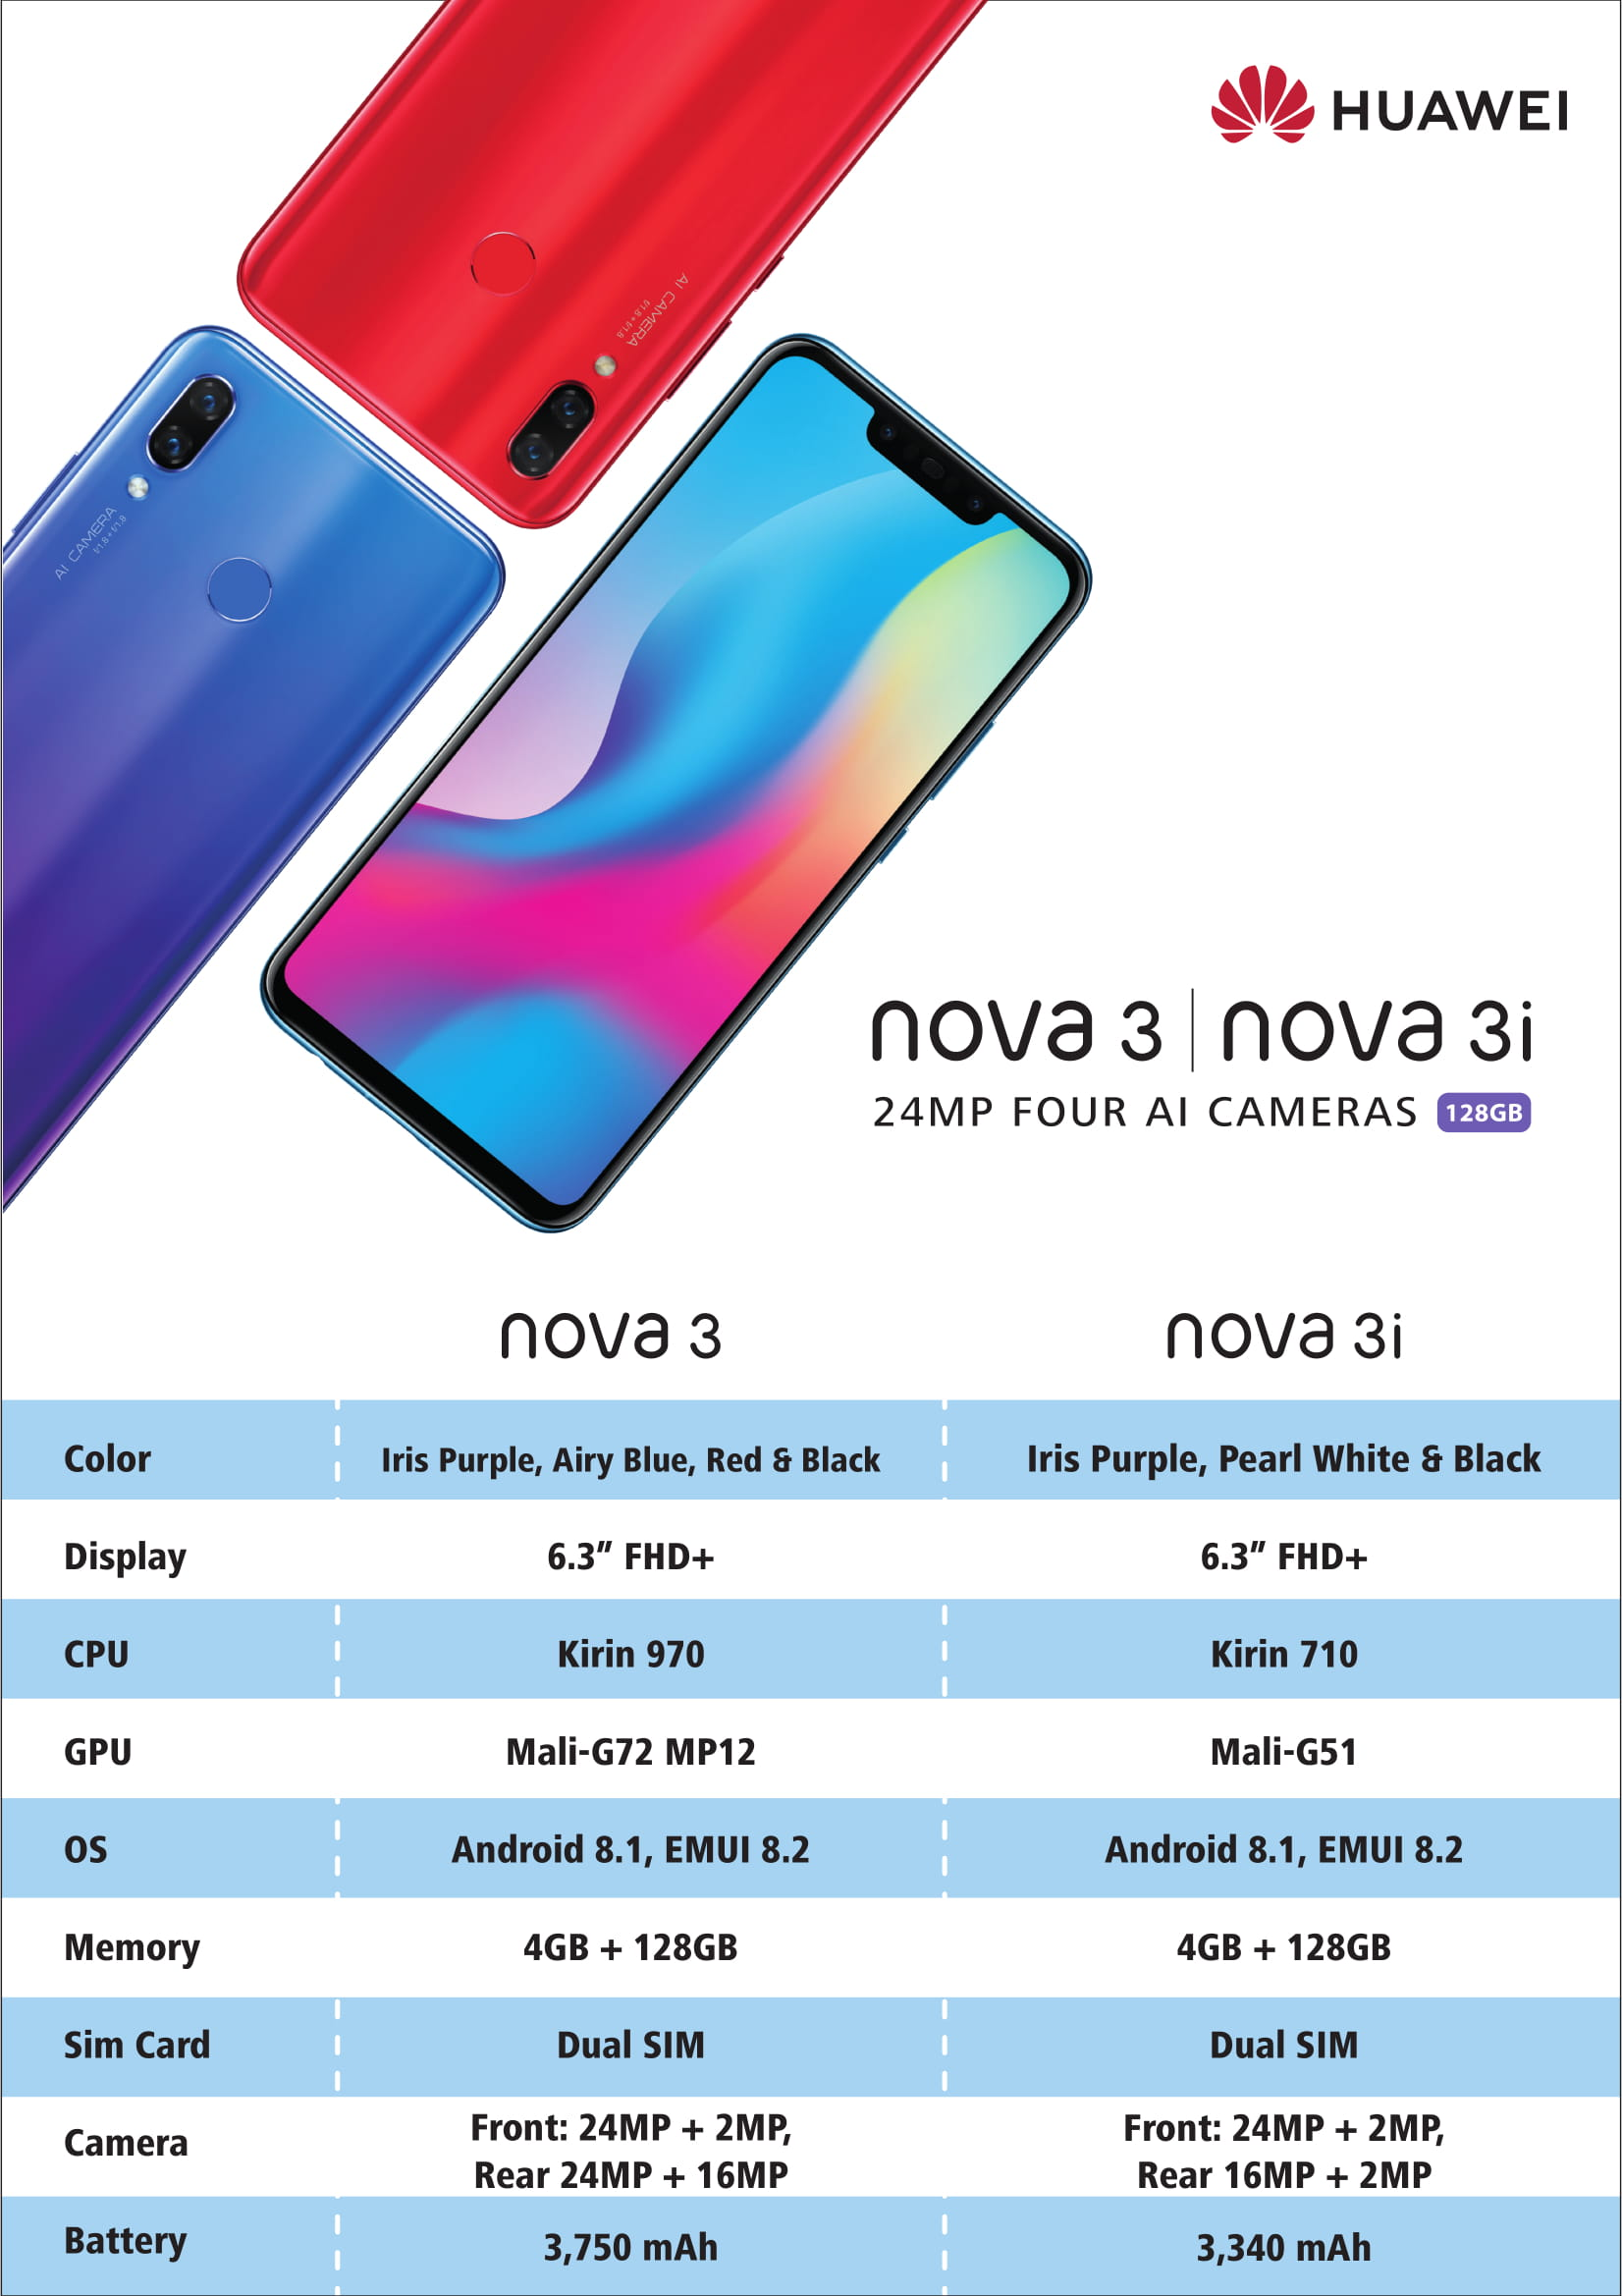 Huawei Launched Nova 3 and Nova 3i at an Affordable Price in